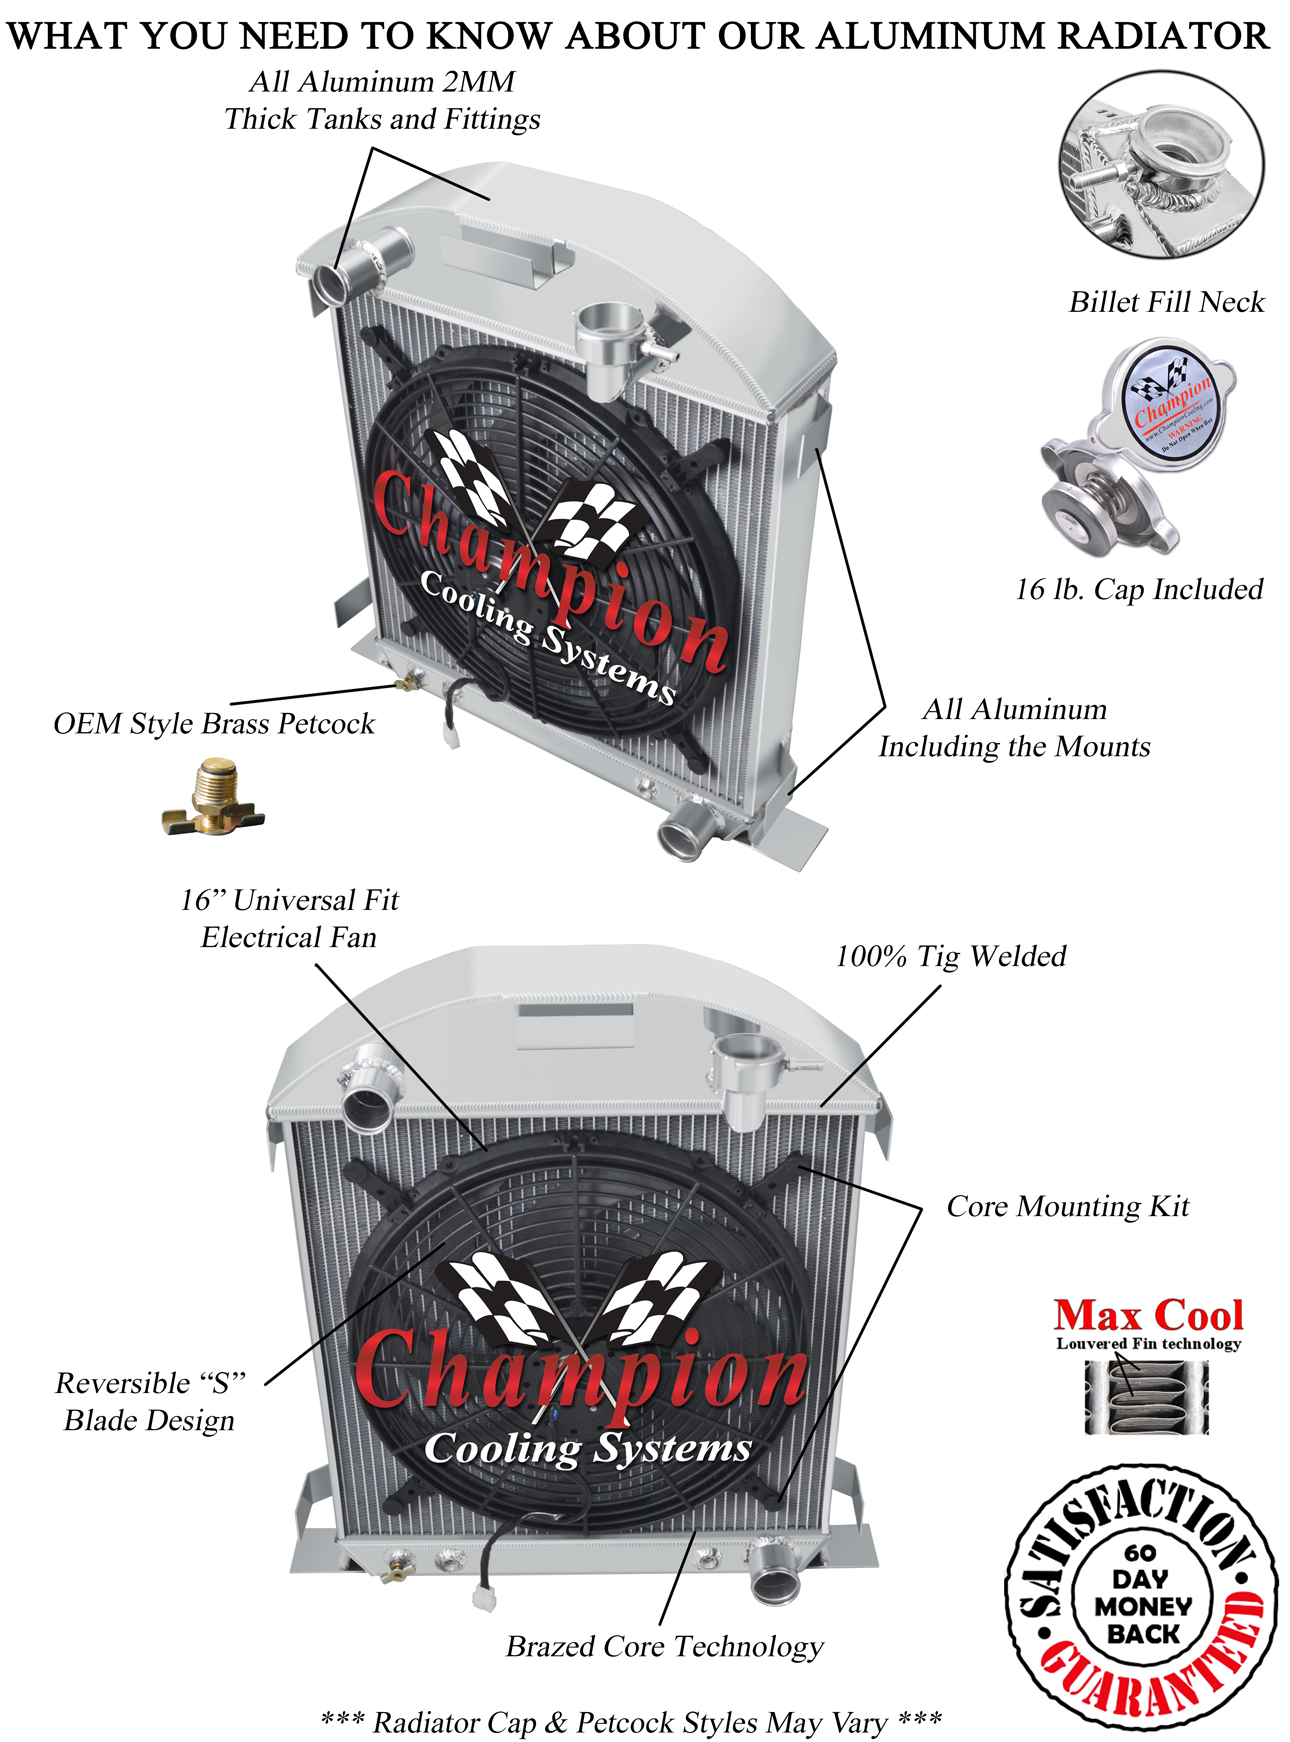 http://www.championcooling.com/photos/Photos%20White/With%20Fans/Combos/2829ch/16/2829ch_1f_d_w.jpg